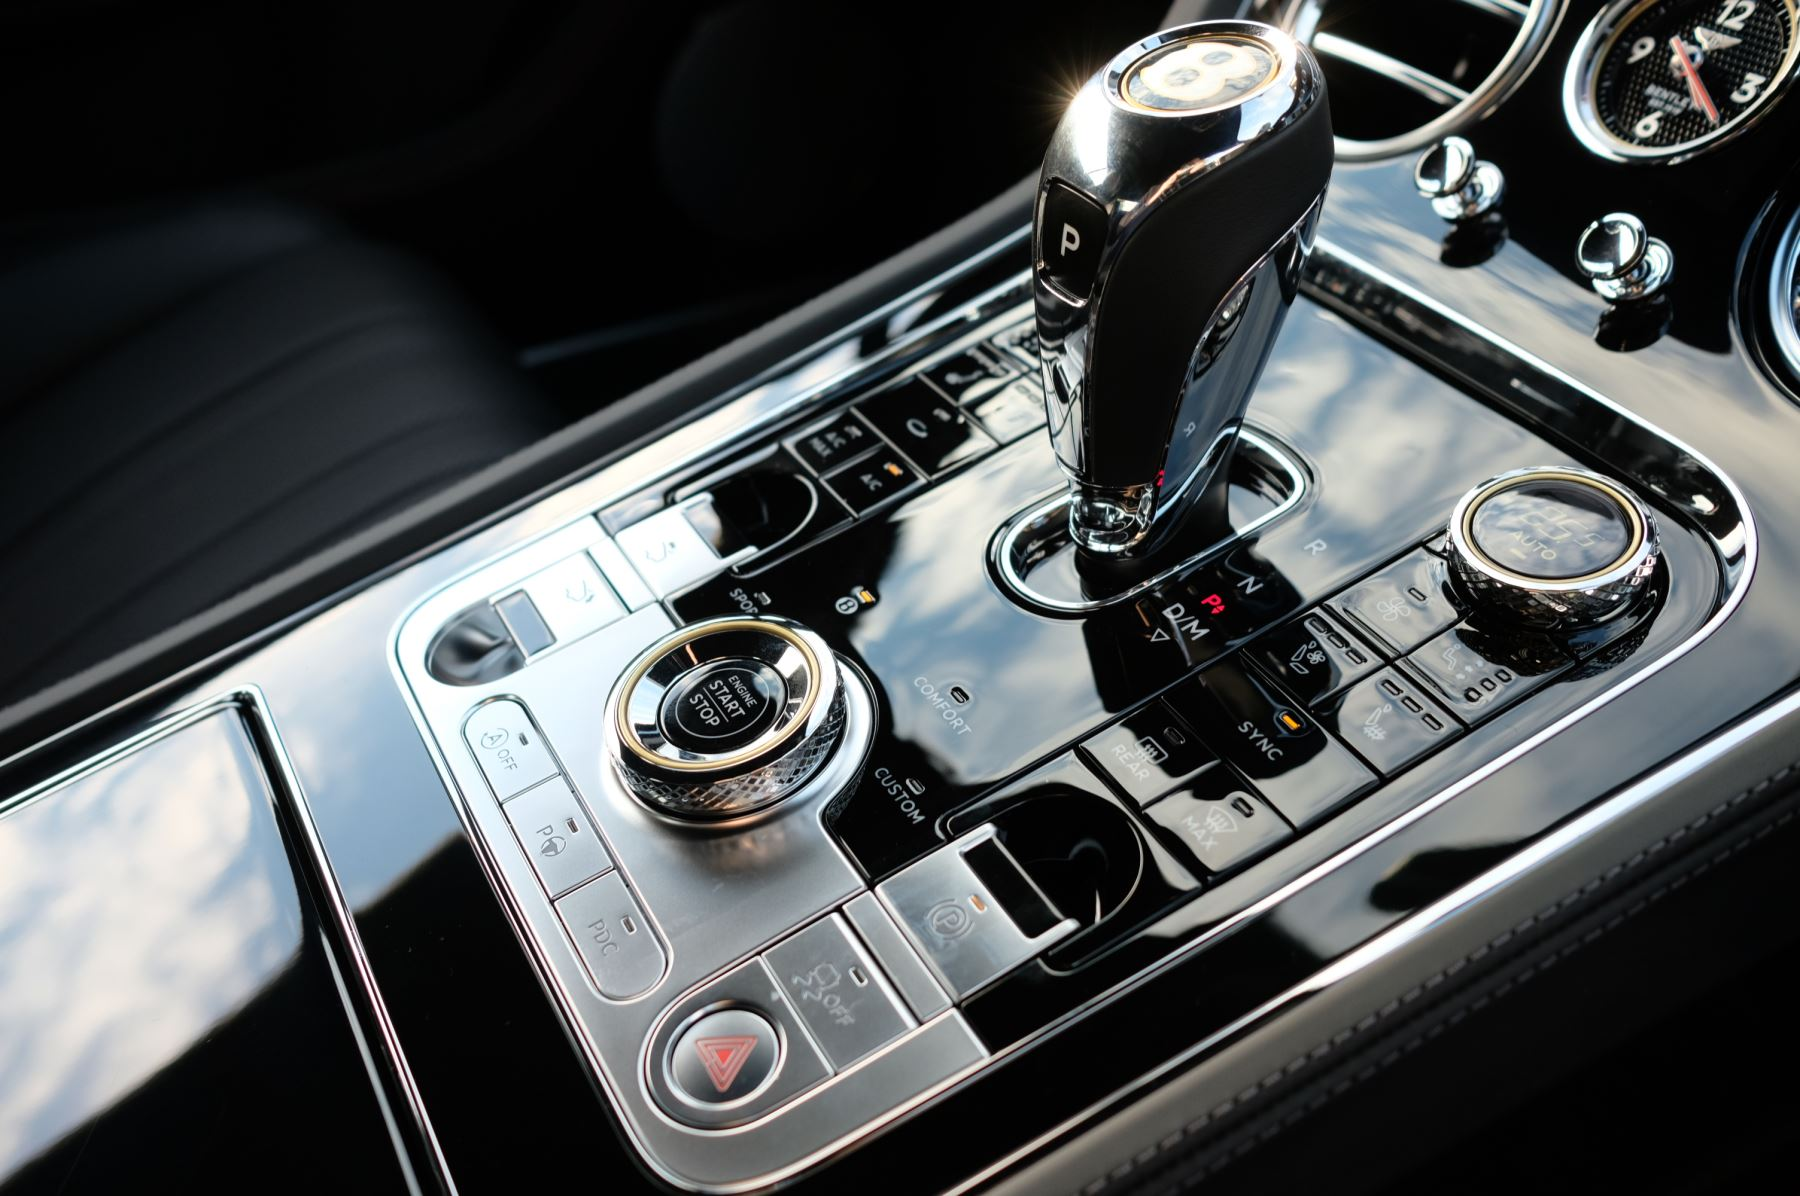 Bentley Continental GT 4.0 V8 2dr Auto [City+Touring Spec] image 19